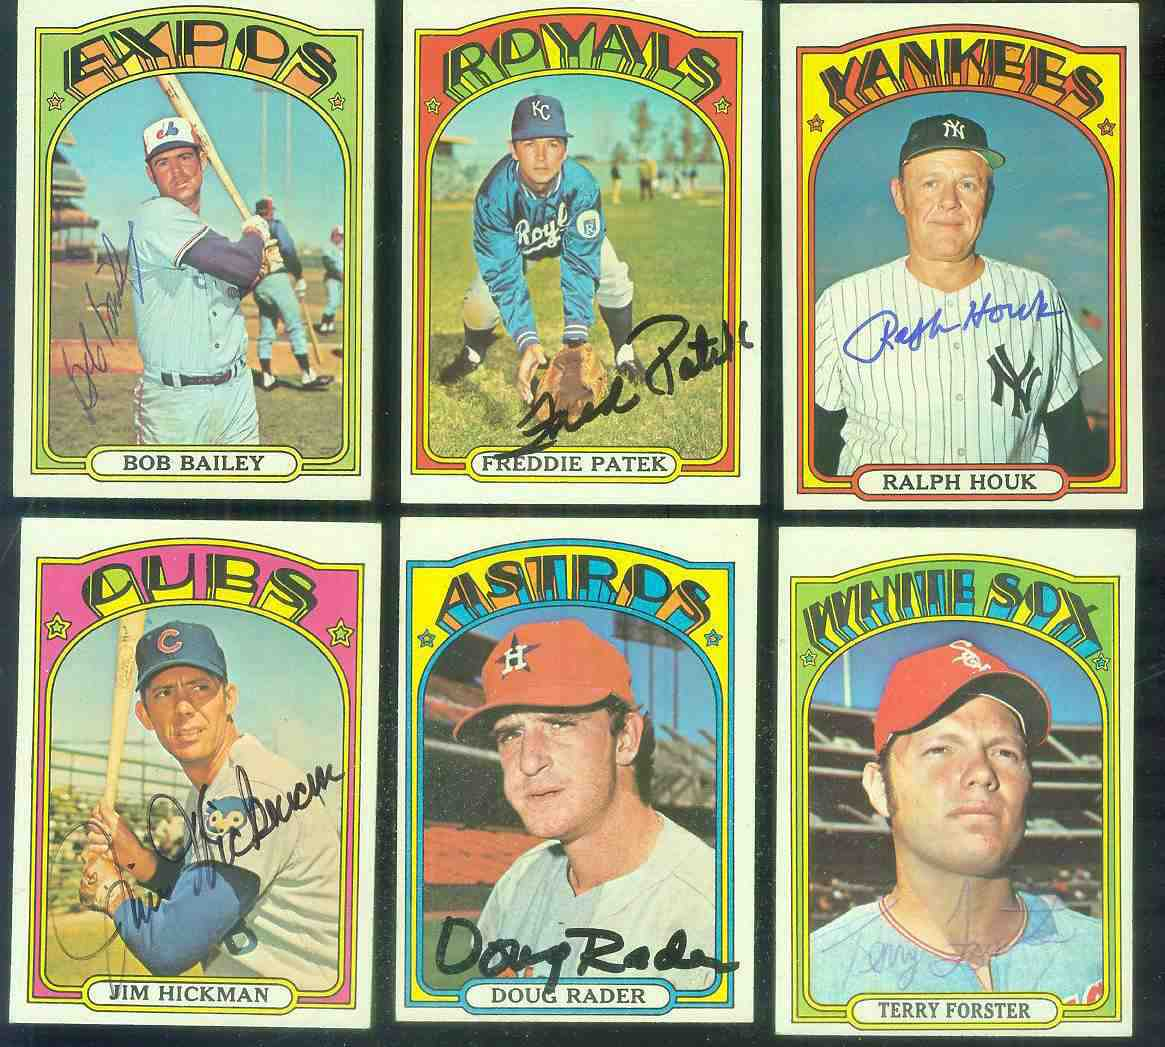 AUTOGRAPHED: 1972 Topps #539 Terry Forster ROOKIE PSA/DNA LOA (White Sox) Baseball cards value